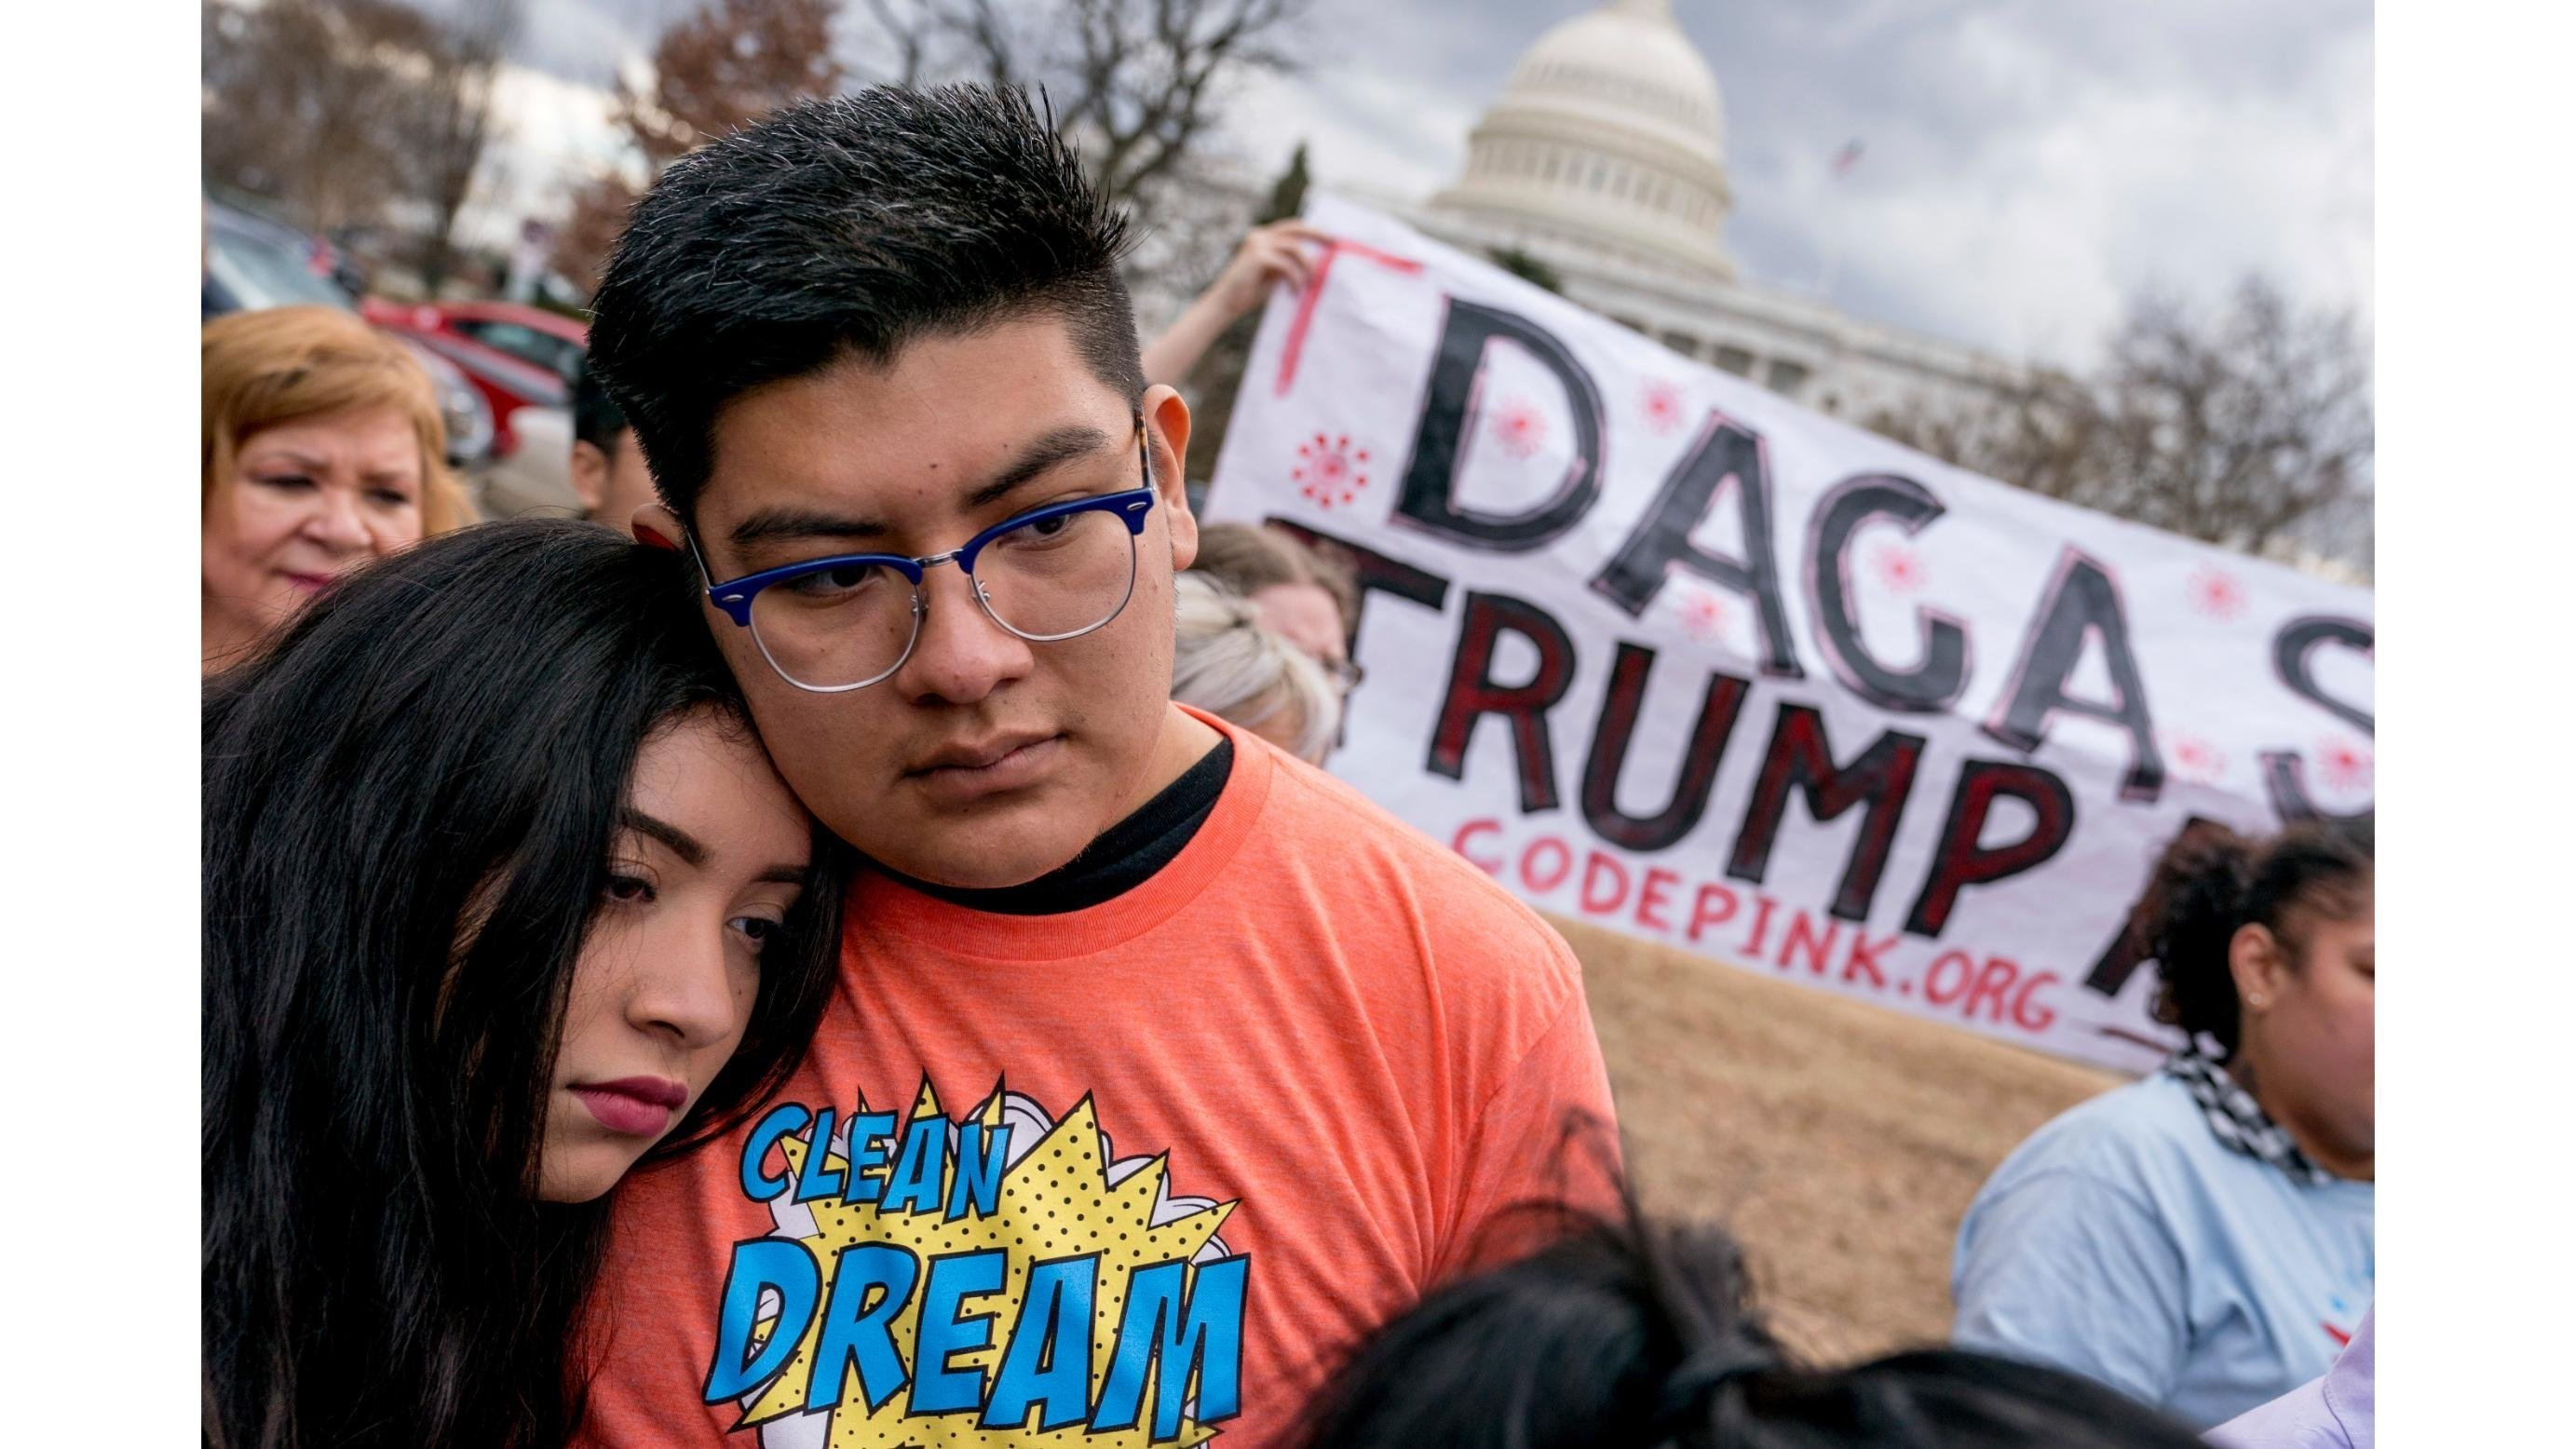 Uncertainty looms for thousands of dreamers in New Mexico